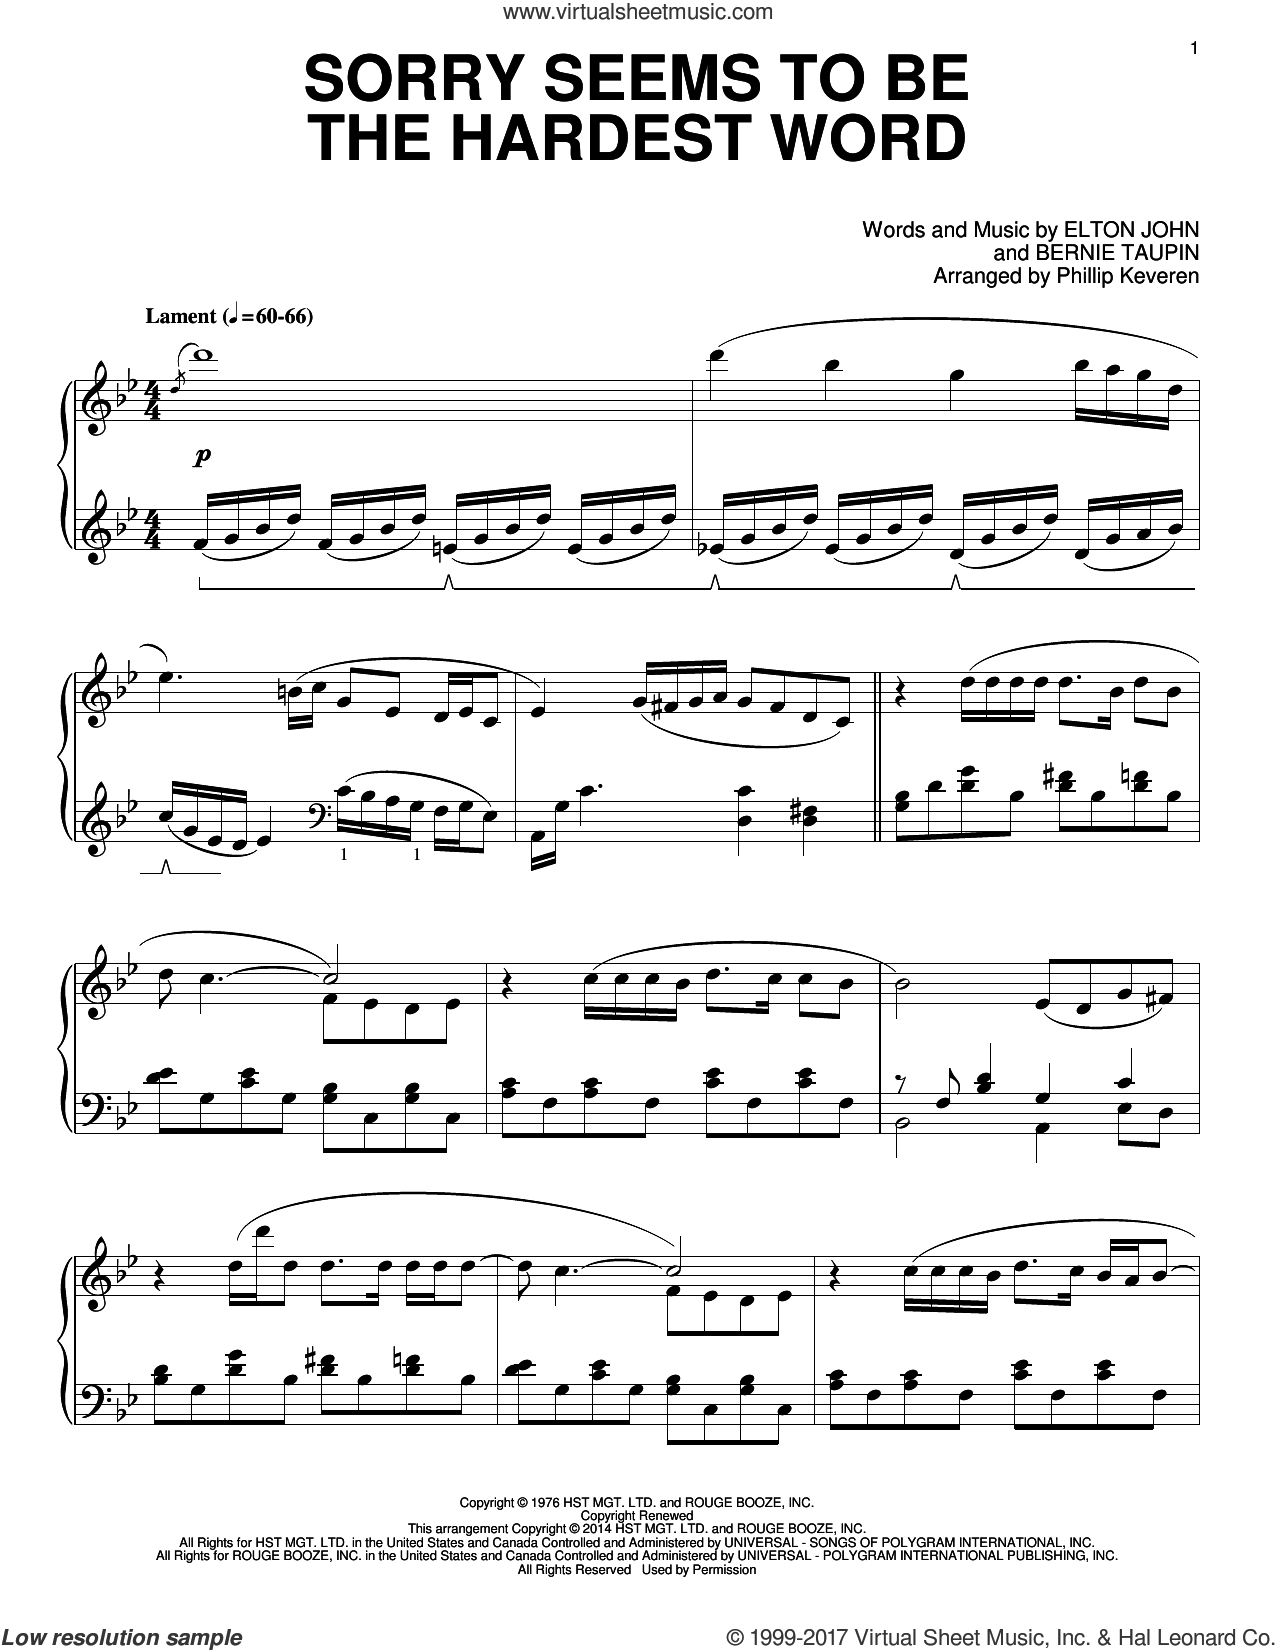 Sorry Seems To Be The Hardest Word [Classical version] (arr. Phillip Keveren) sheet music for piano solo by Phillip Keveren, Bernie Taupin and Elton John, intermediate skill level